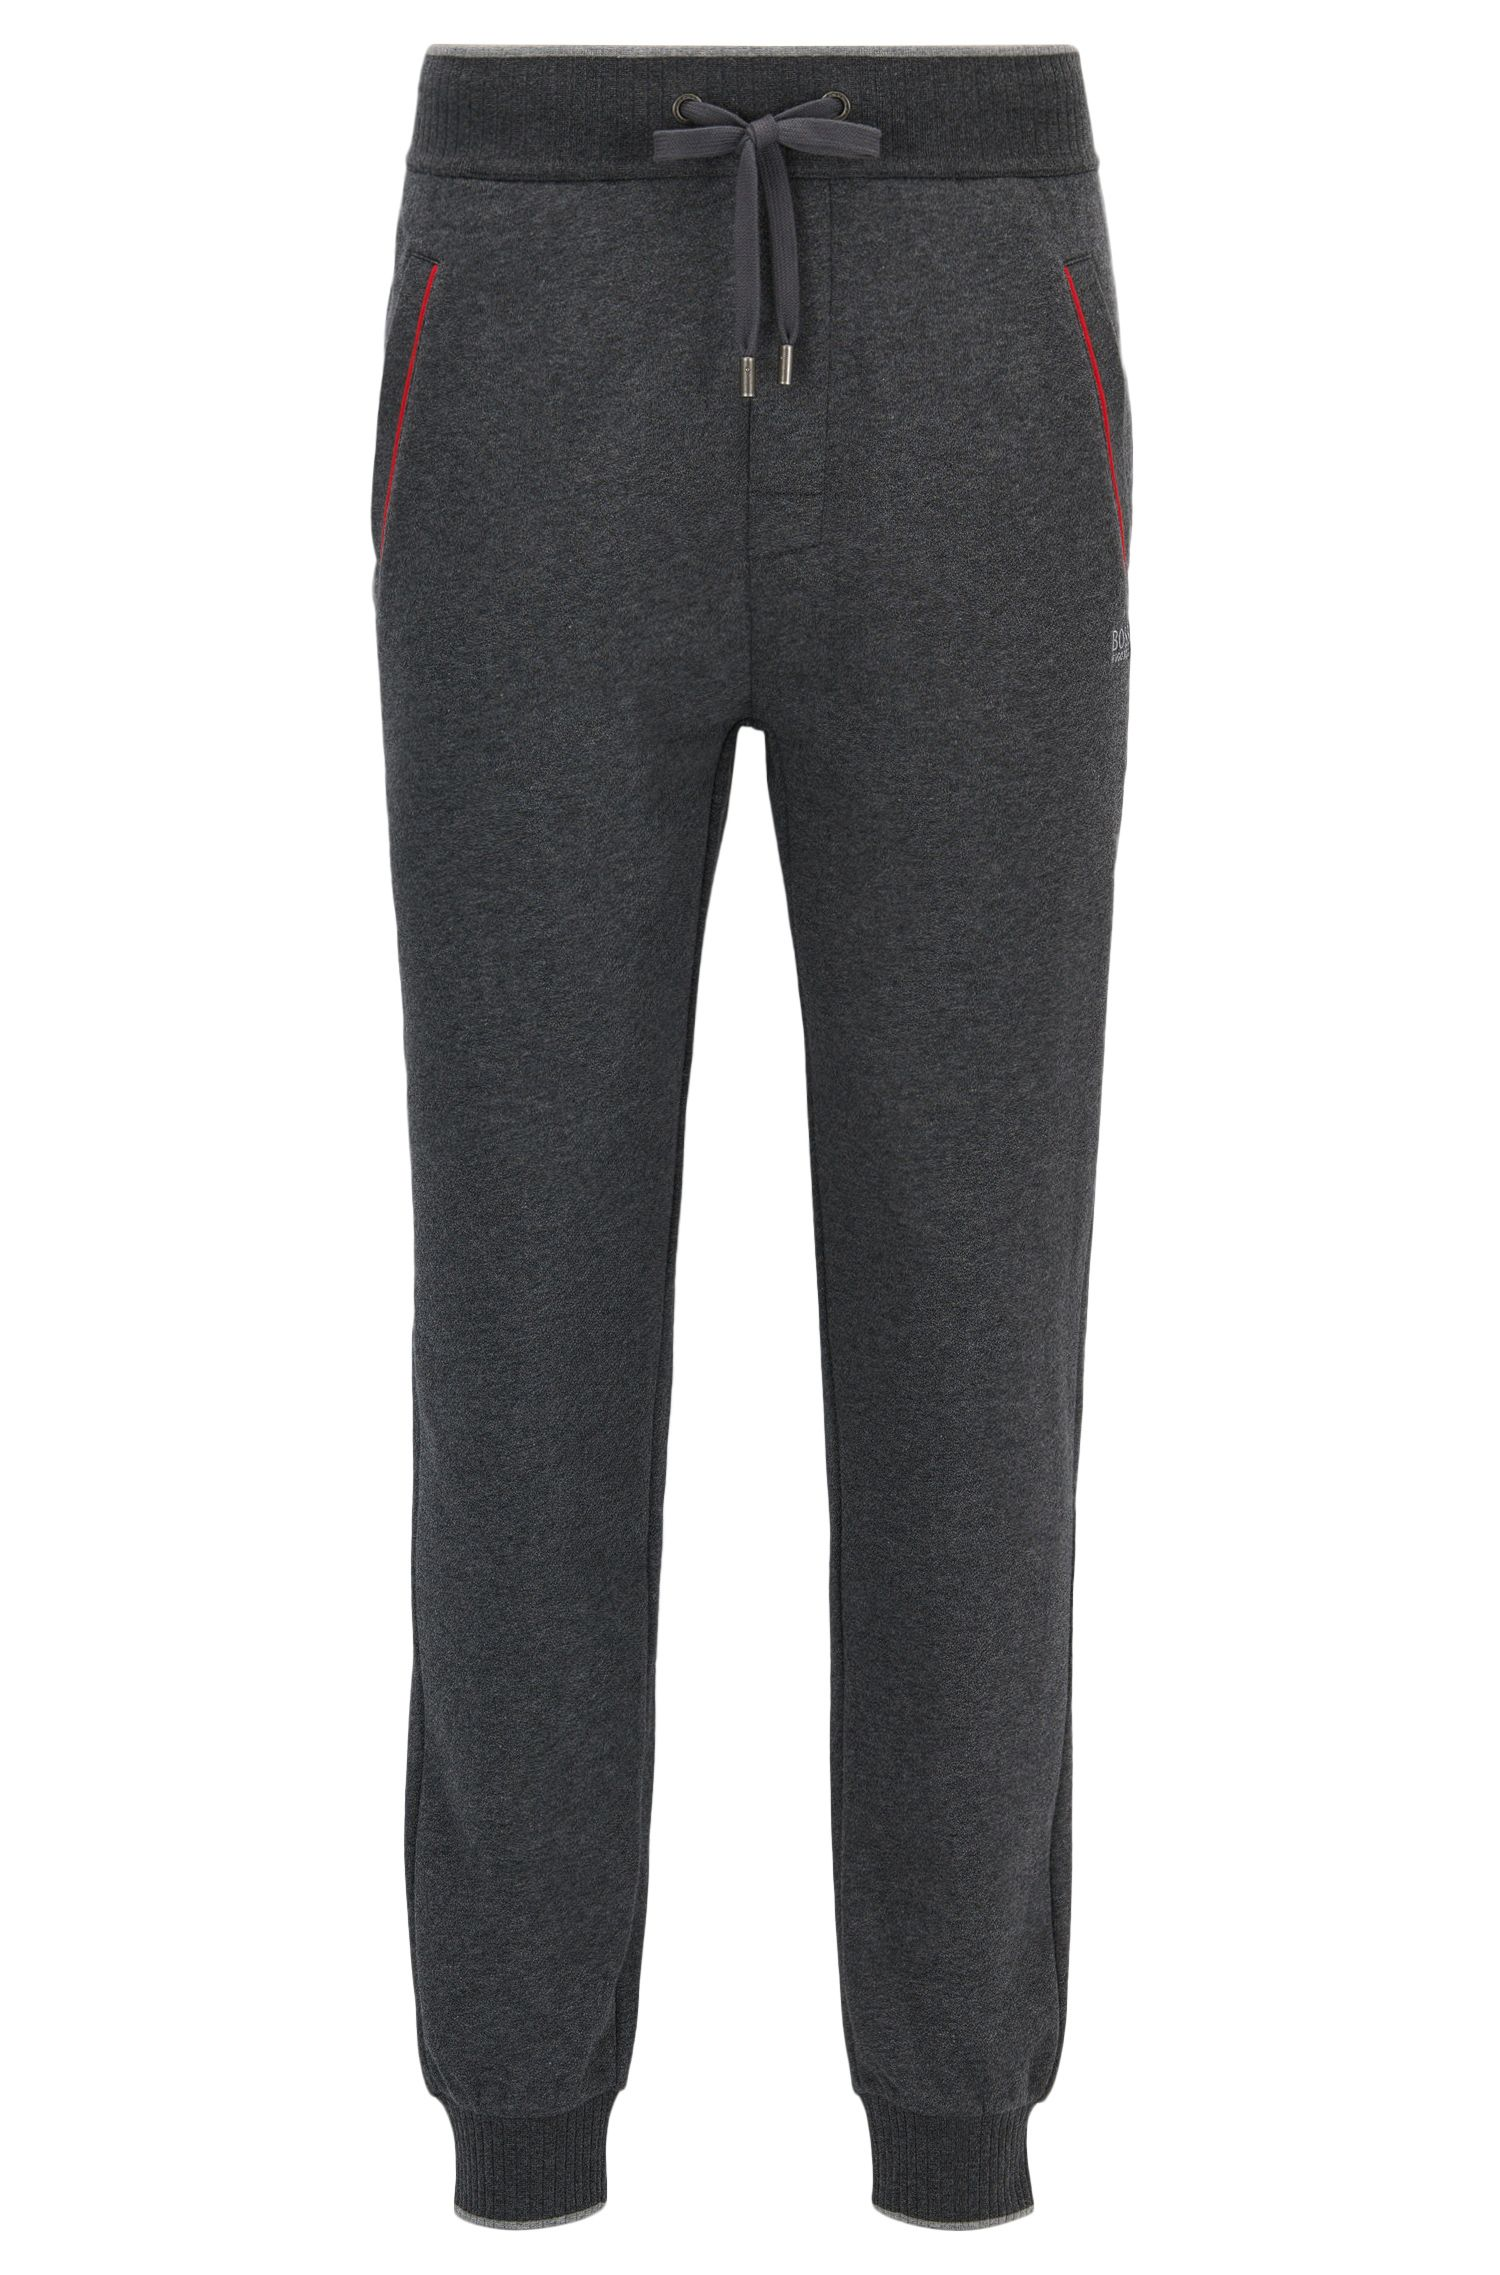 Piped Cotton Blend Jersey Lounge Pant | Authentic Pant